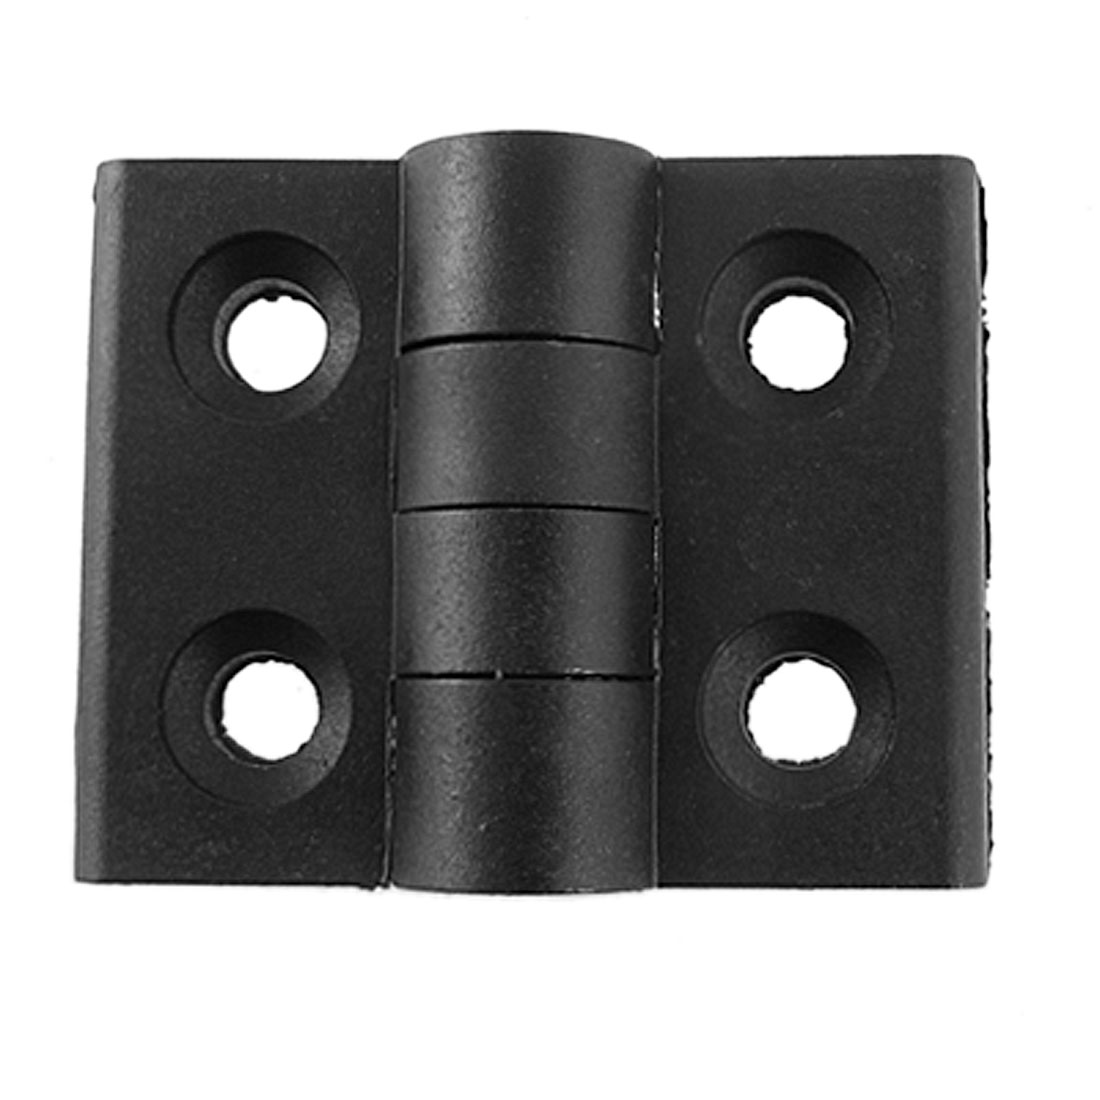 60 x 45mm Metal Axle Plastic Door Radius Hinges 2 Pcs